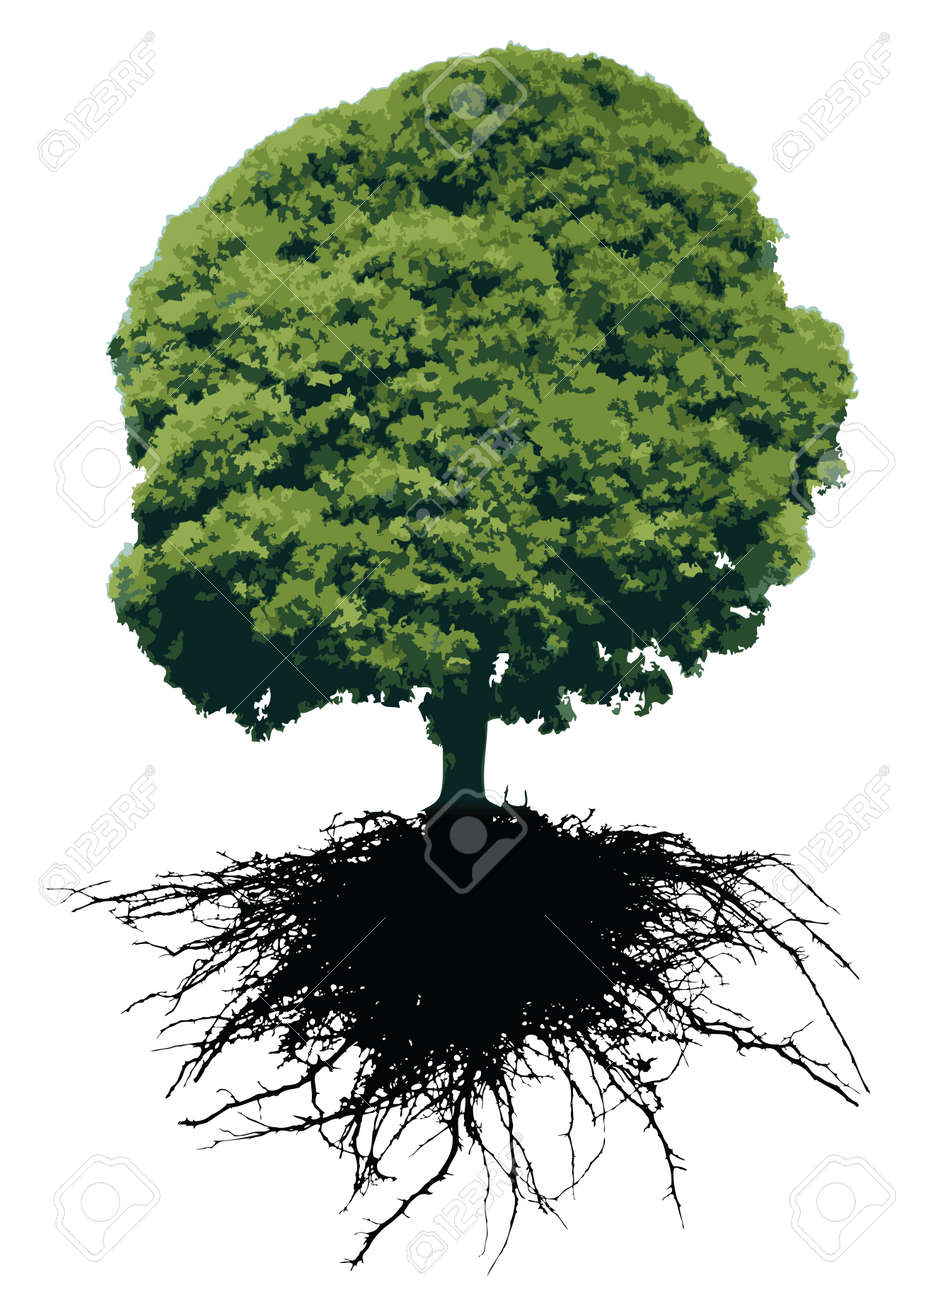 Trees with roots - 8606370